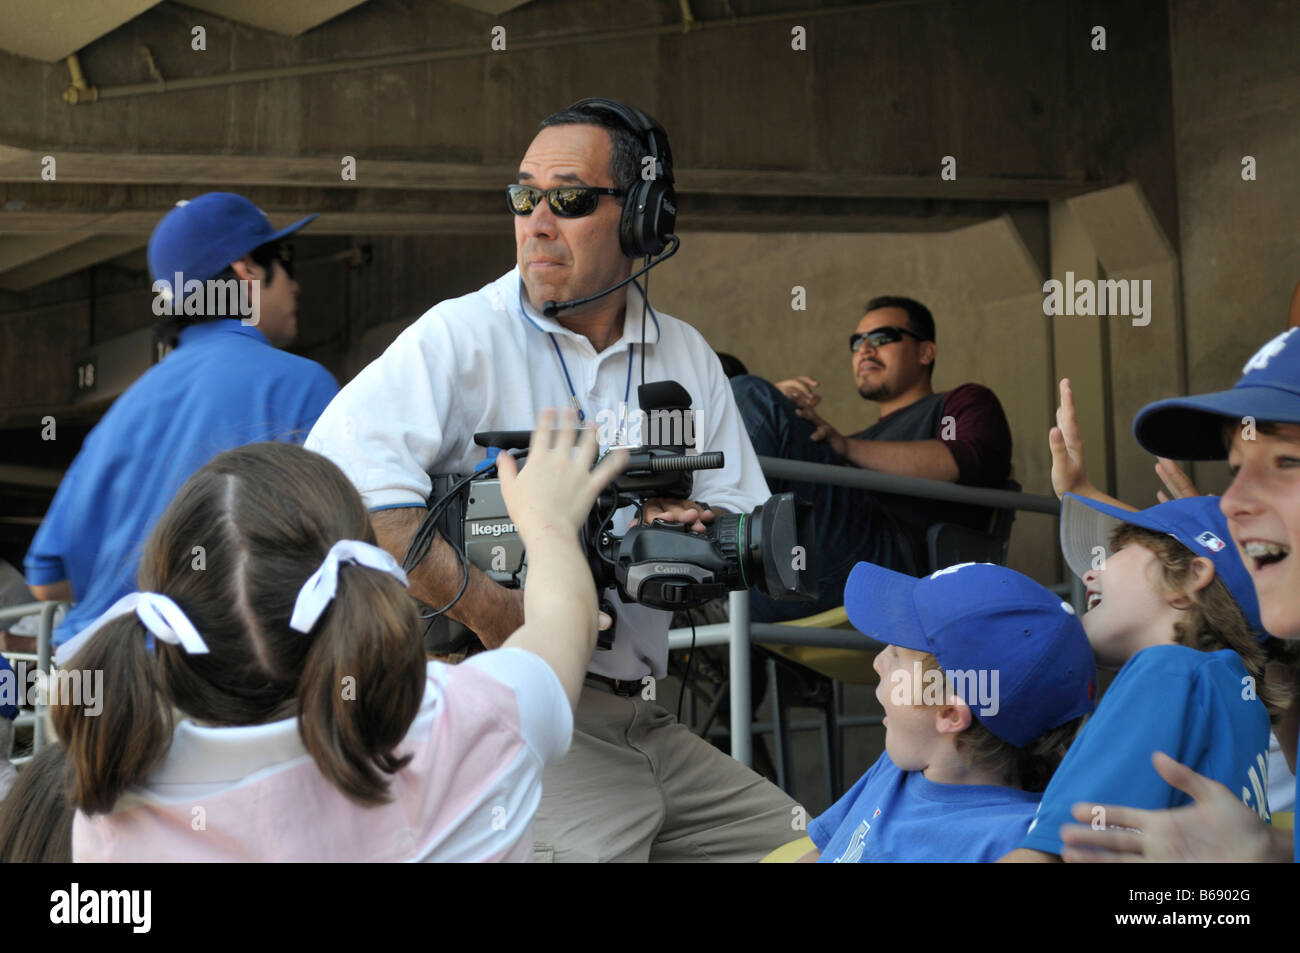 Video camera crew checks big screen while transmitting images of excited young baseball fans - Stock Image